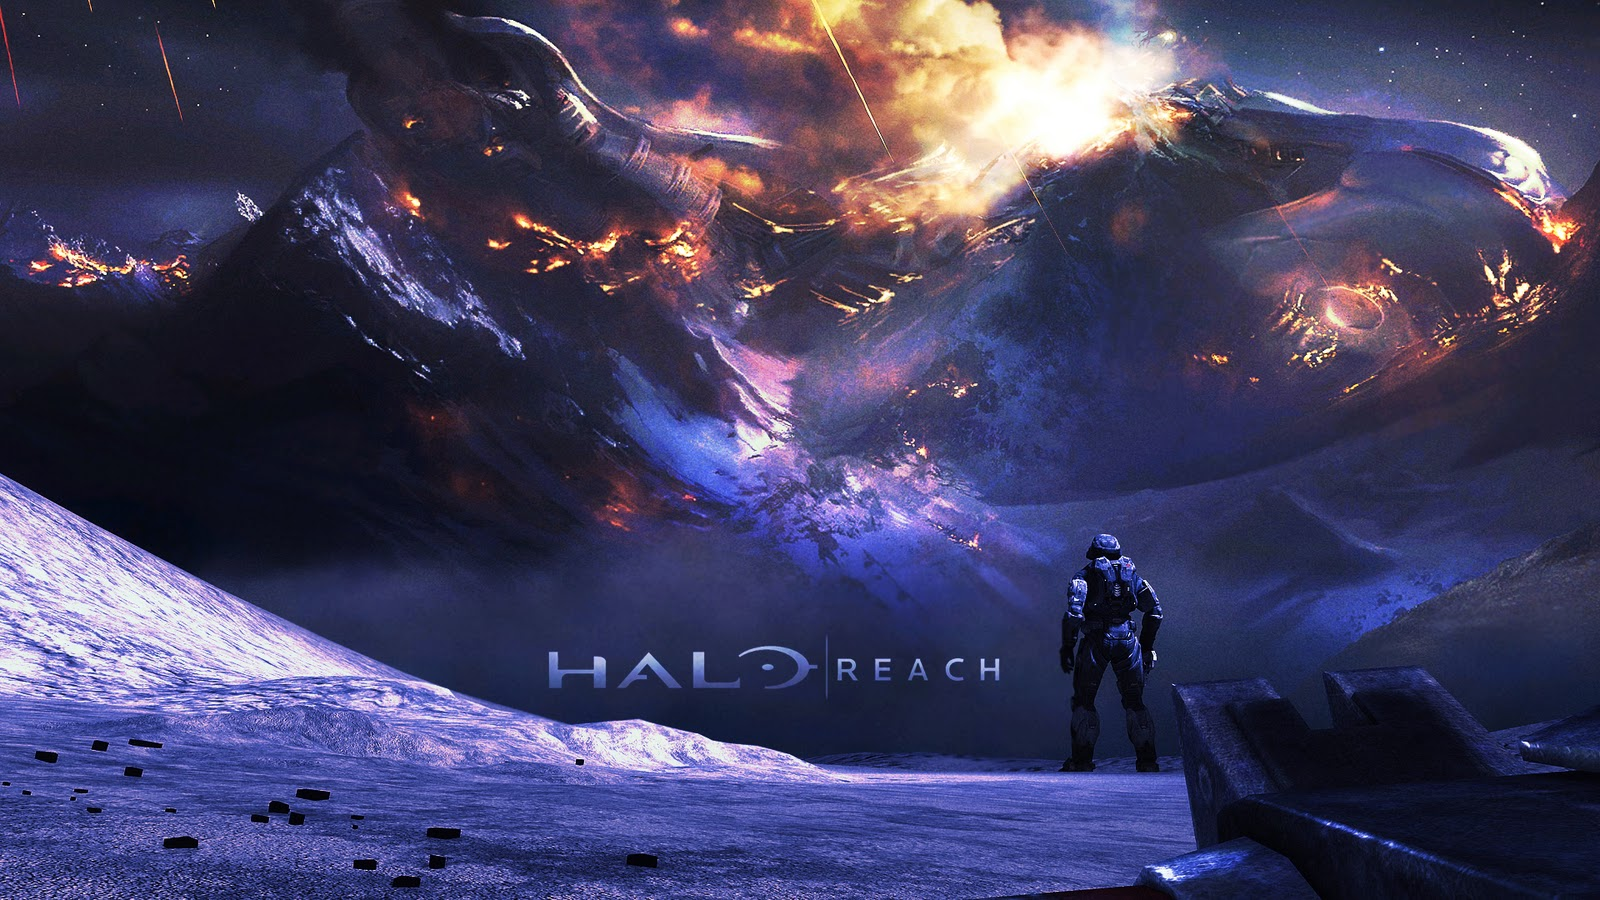 halo reach matchmaking server down